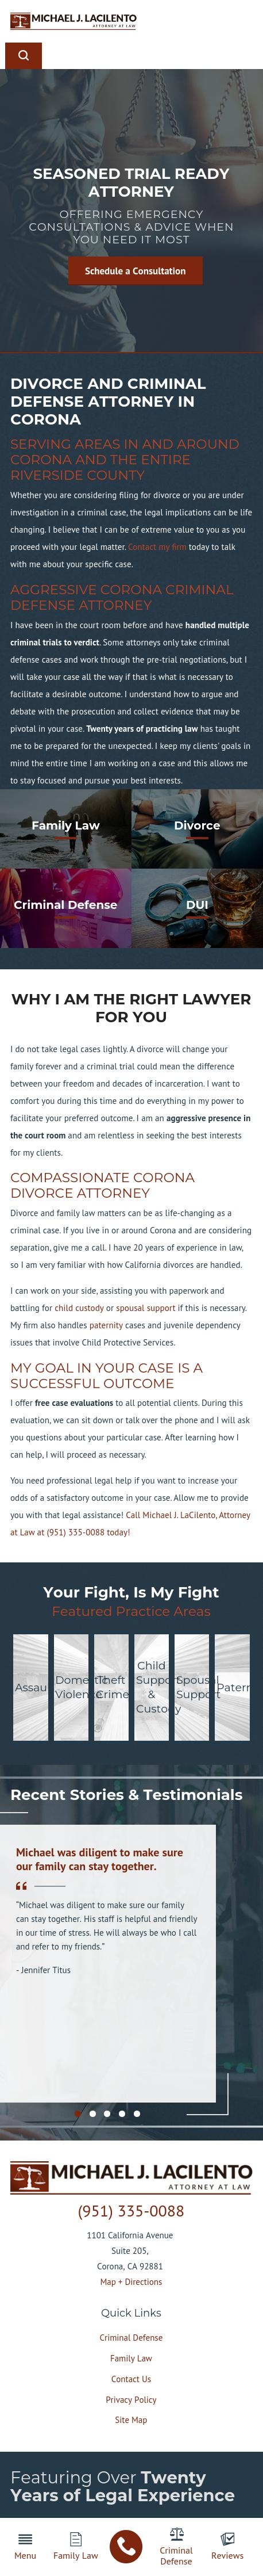 Law Office of Lucy M Bishop - Corona CA Lawyers